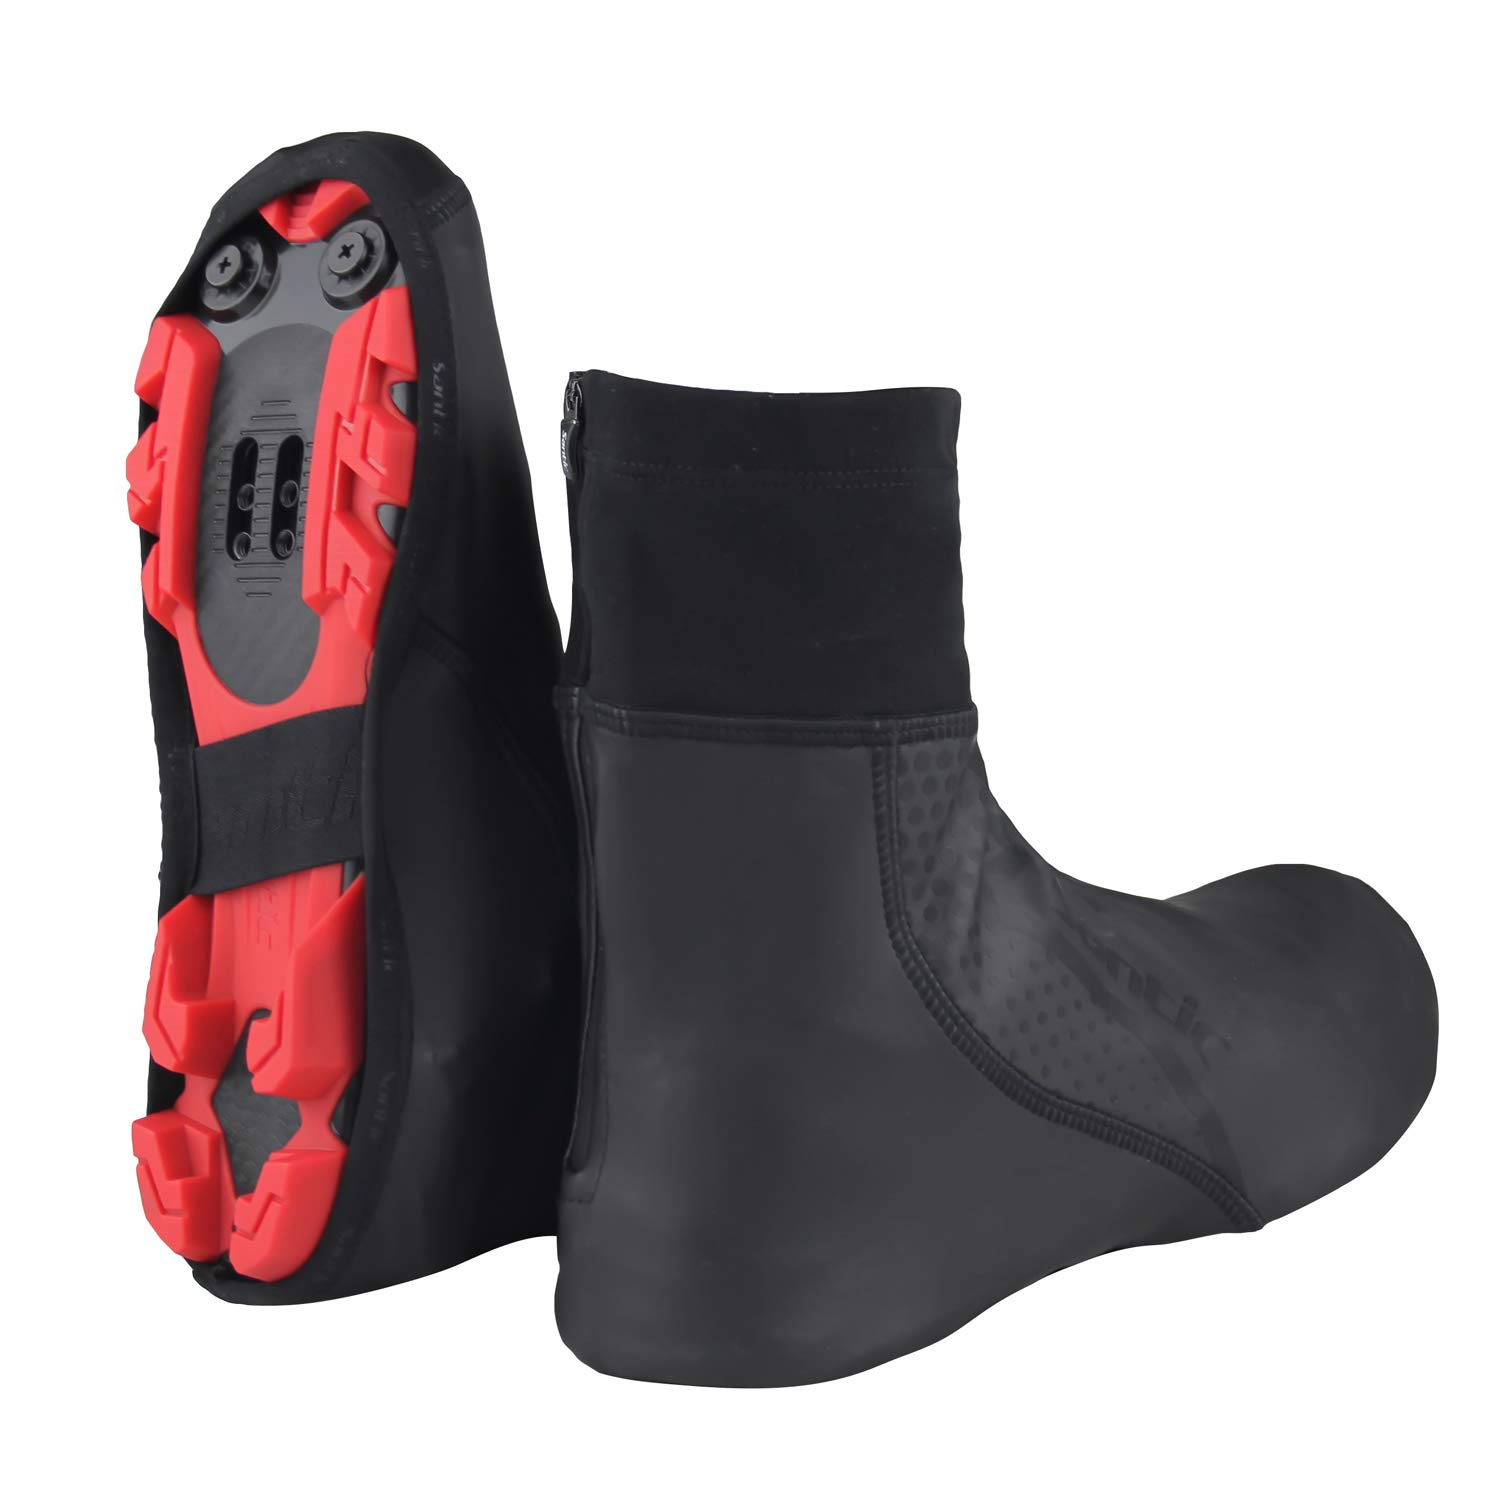 Outeredge Neo II Neoprene Cycling Overshoe